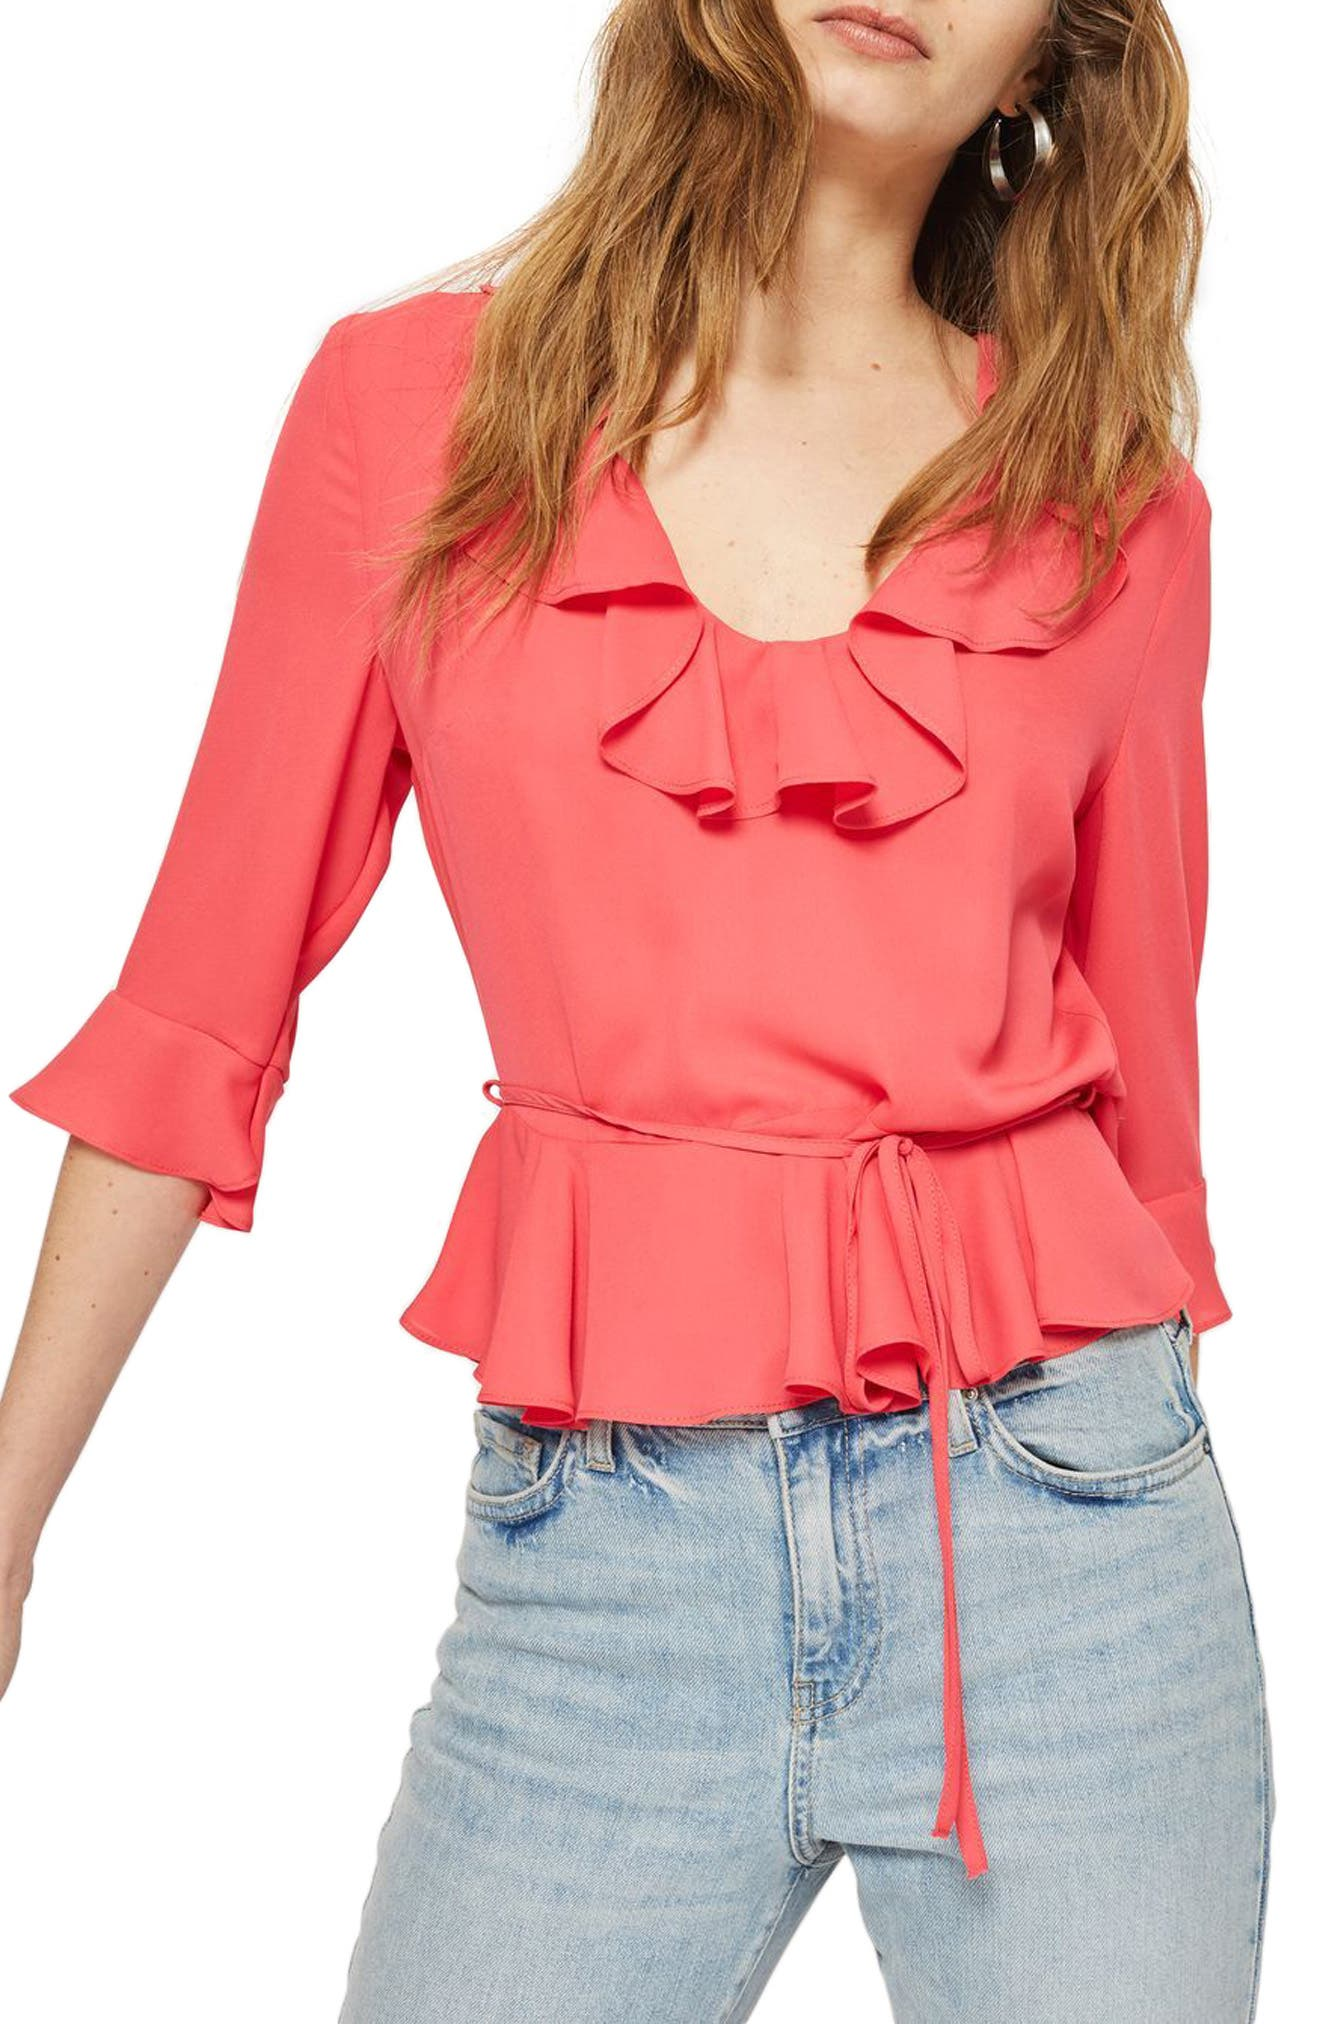 Alternate Image 1 Selected - Topshop Phoebe Frilly Blouse